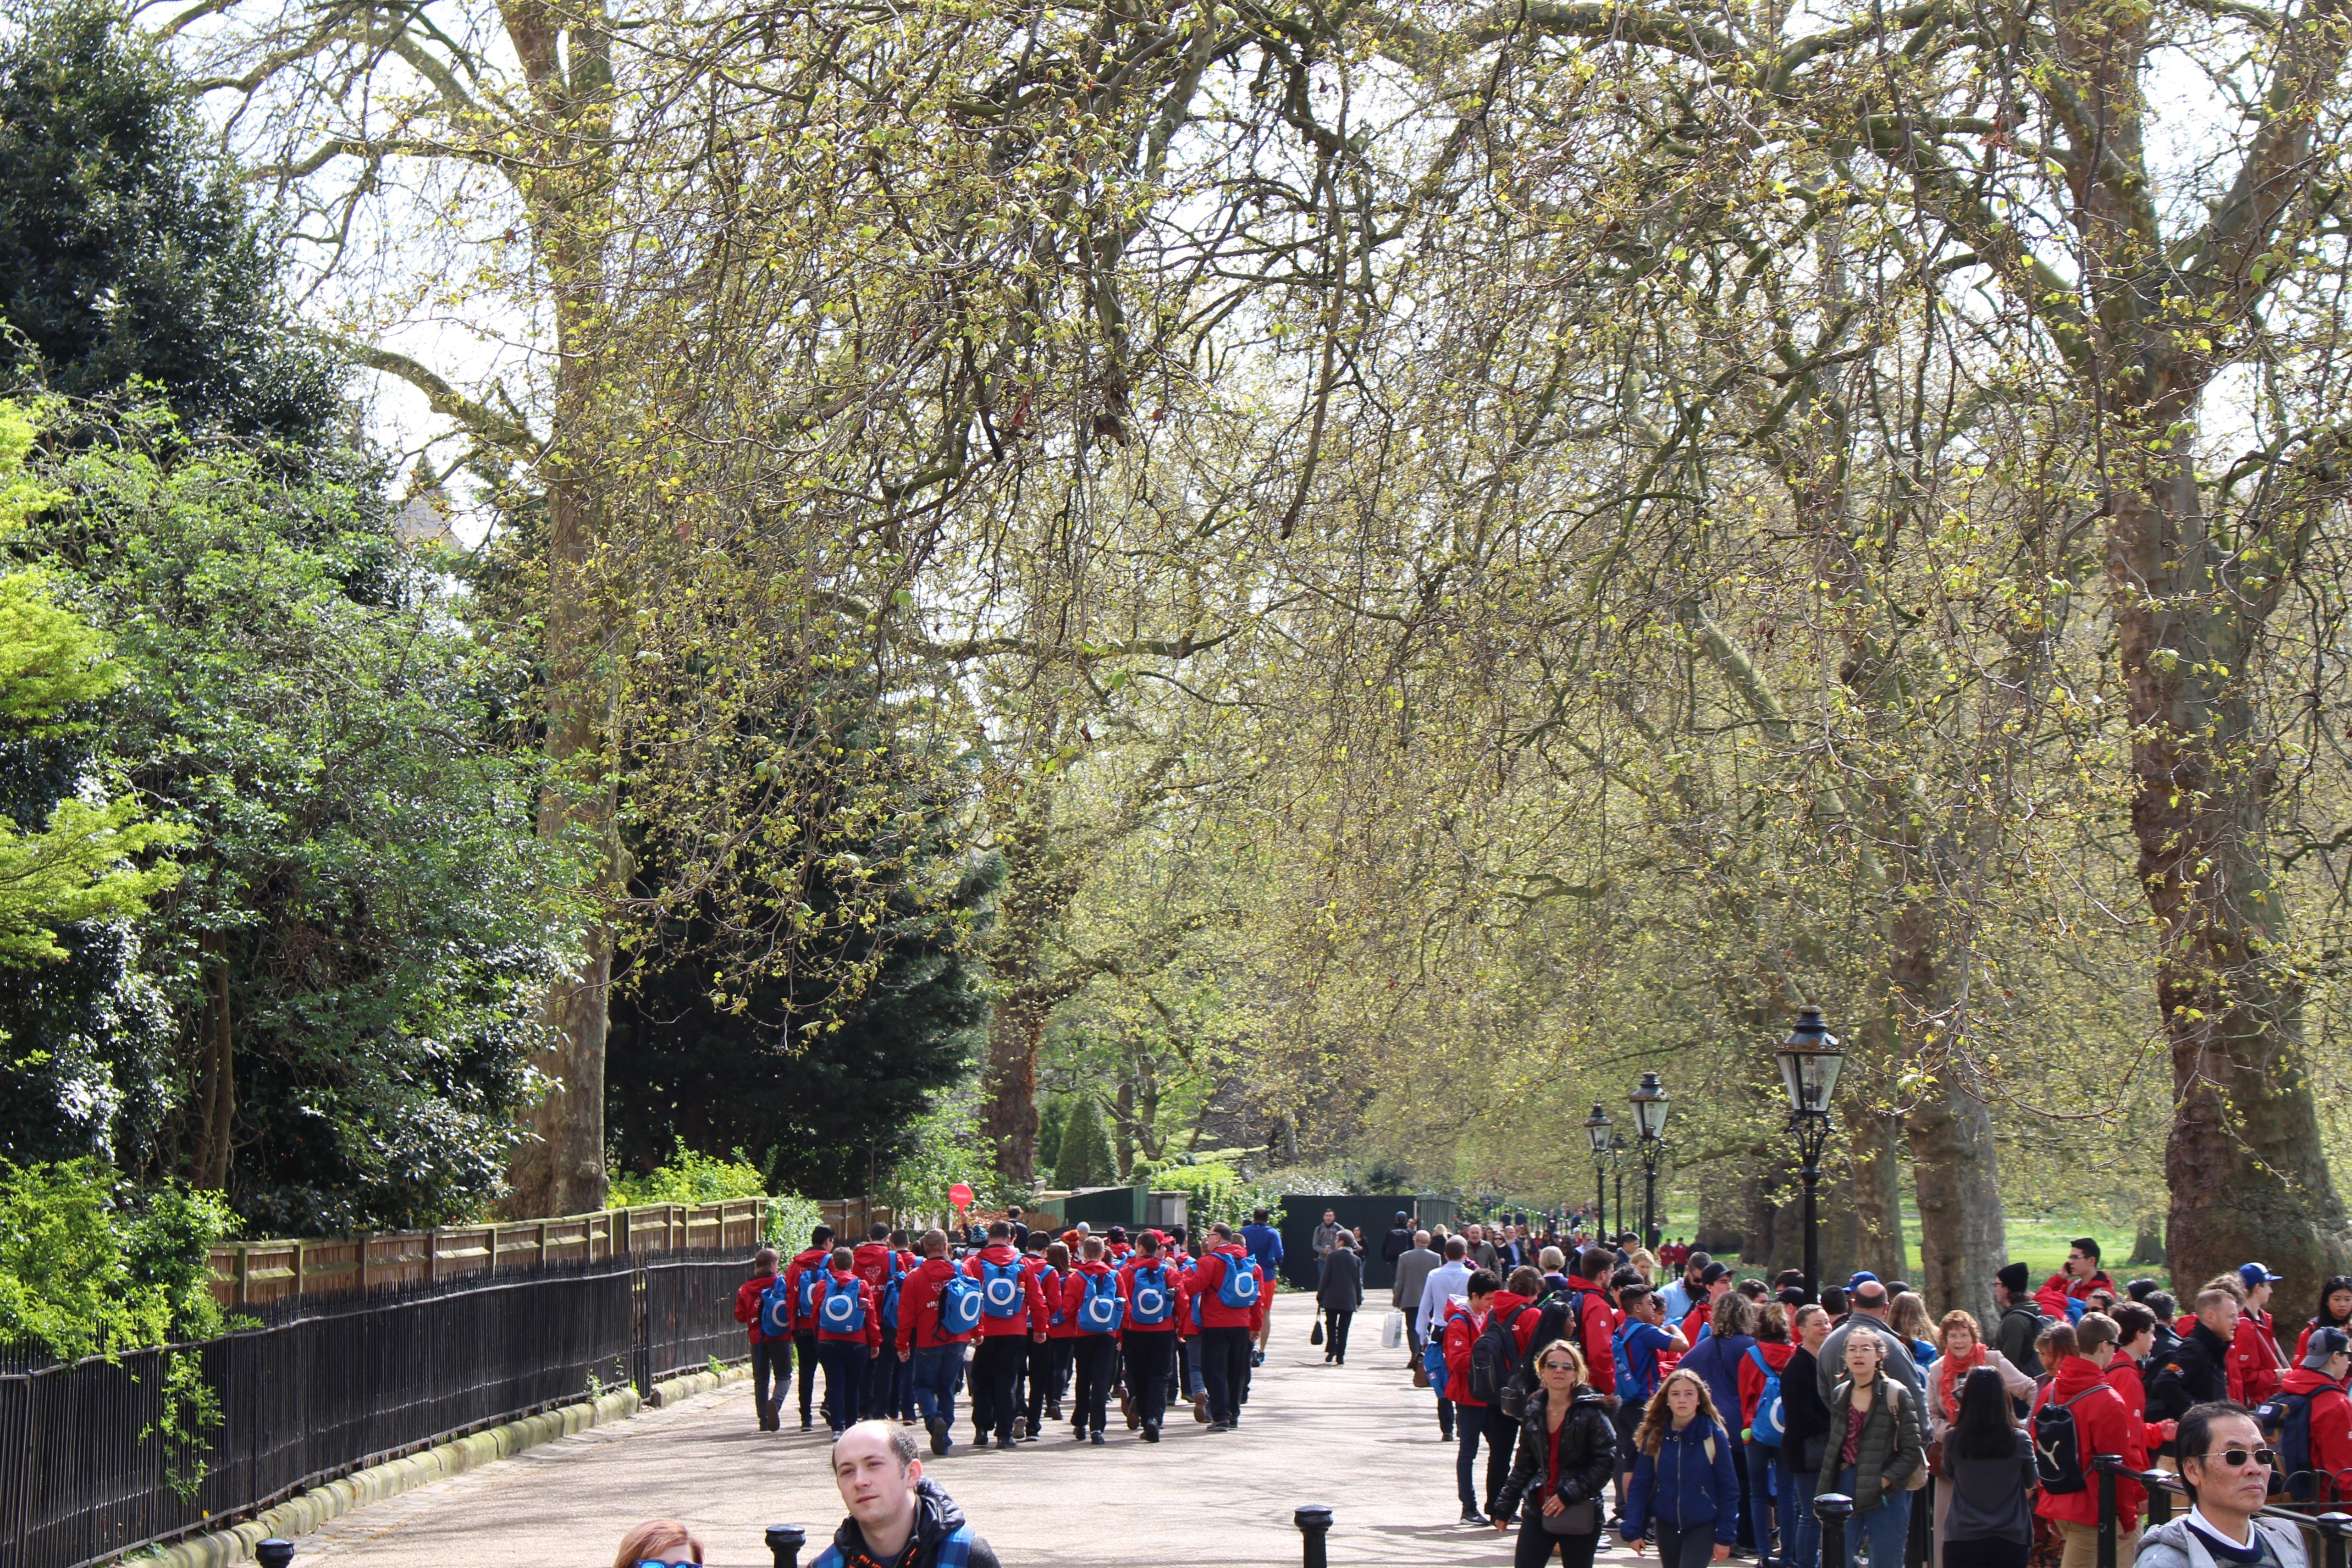 Tour groups walking on path in parks